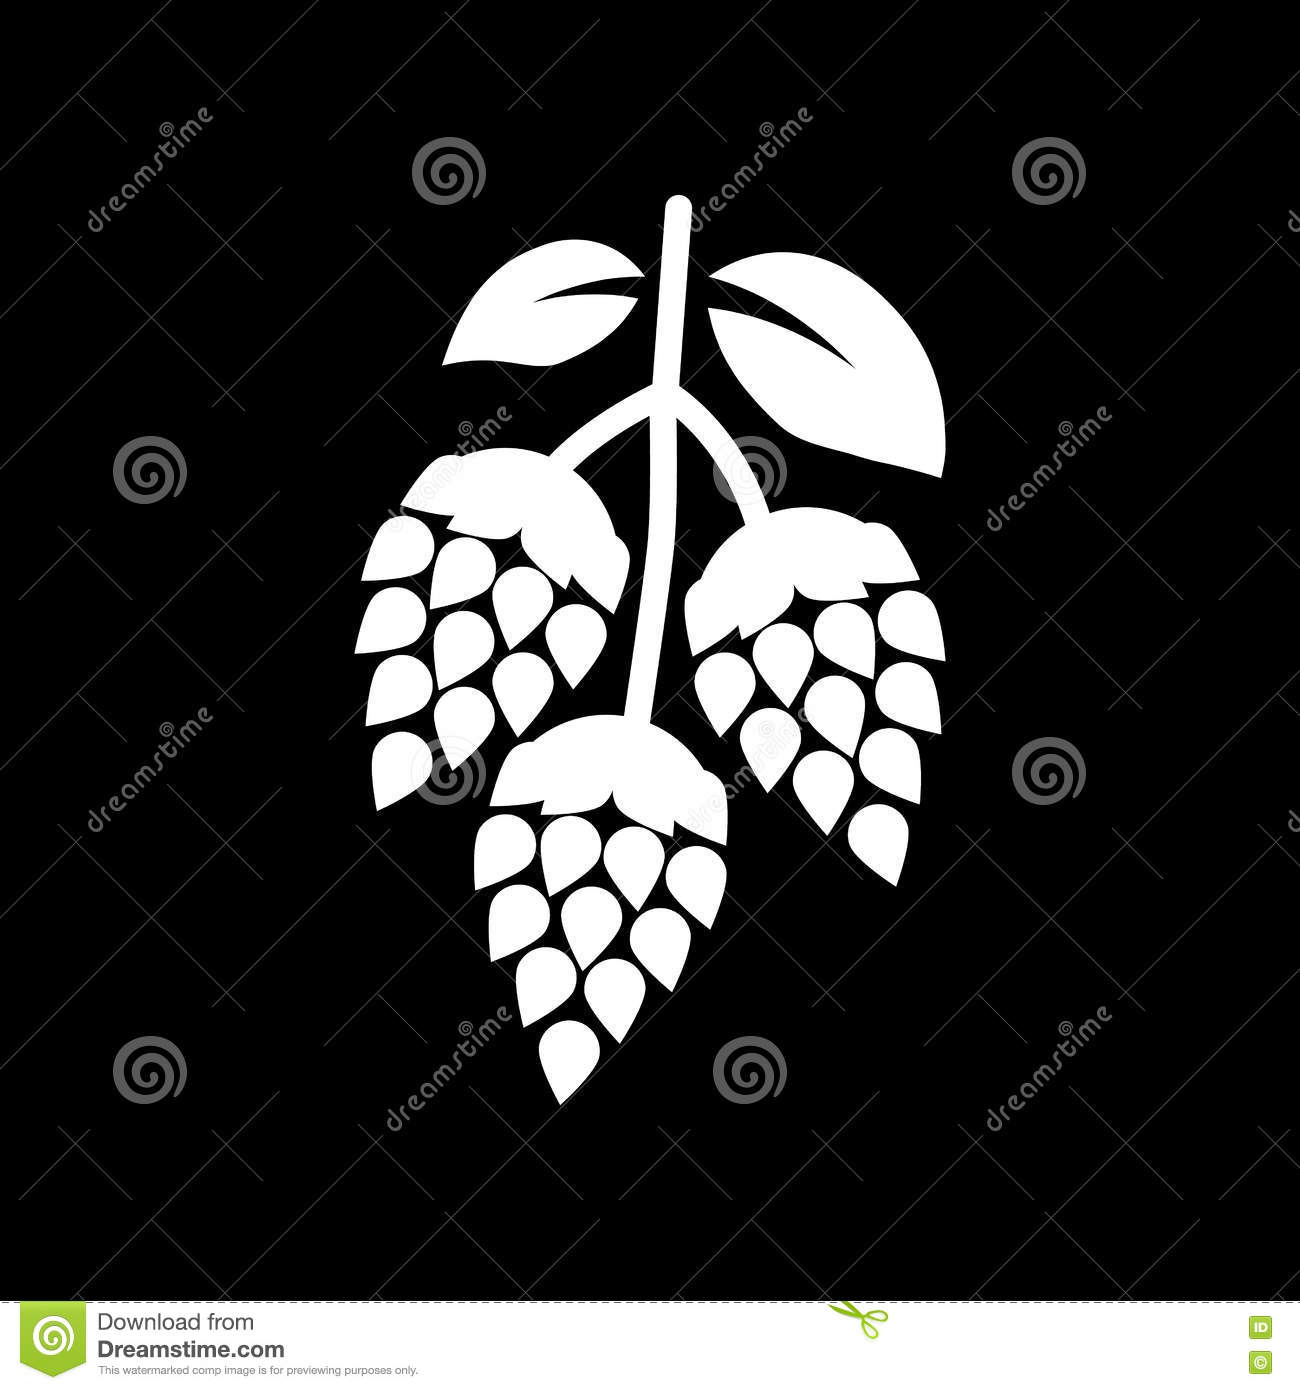 Home Design App Diamonds Design Of Beer And Hops Stock Image Cartoondealer Com